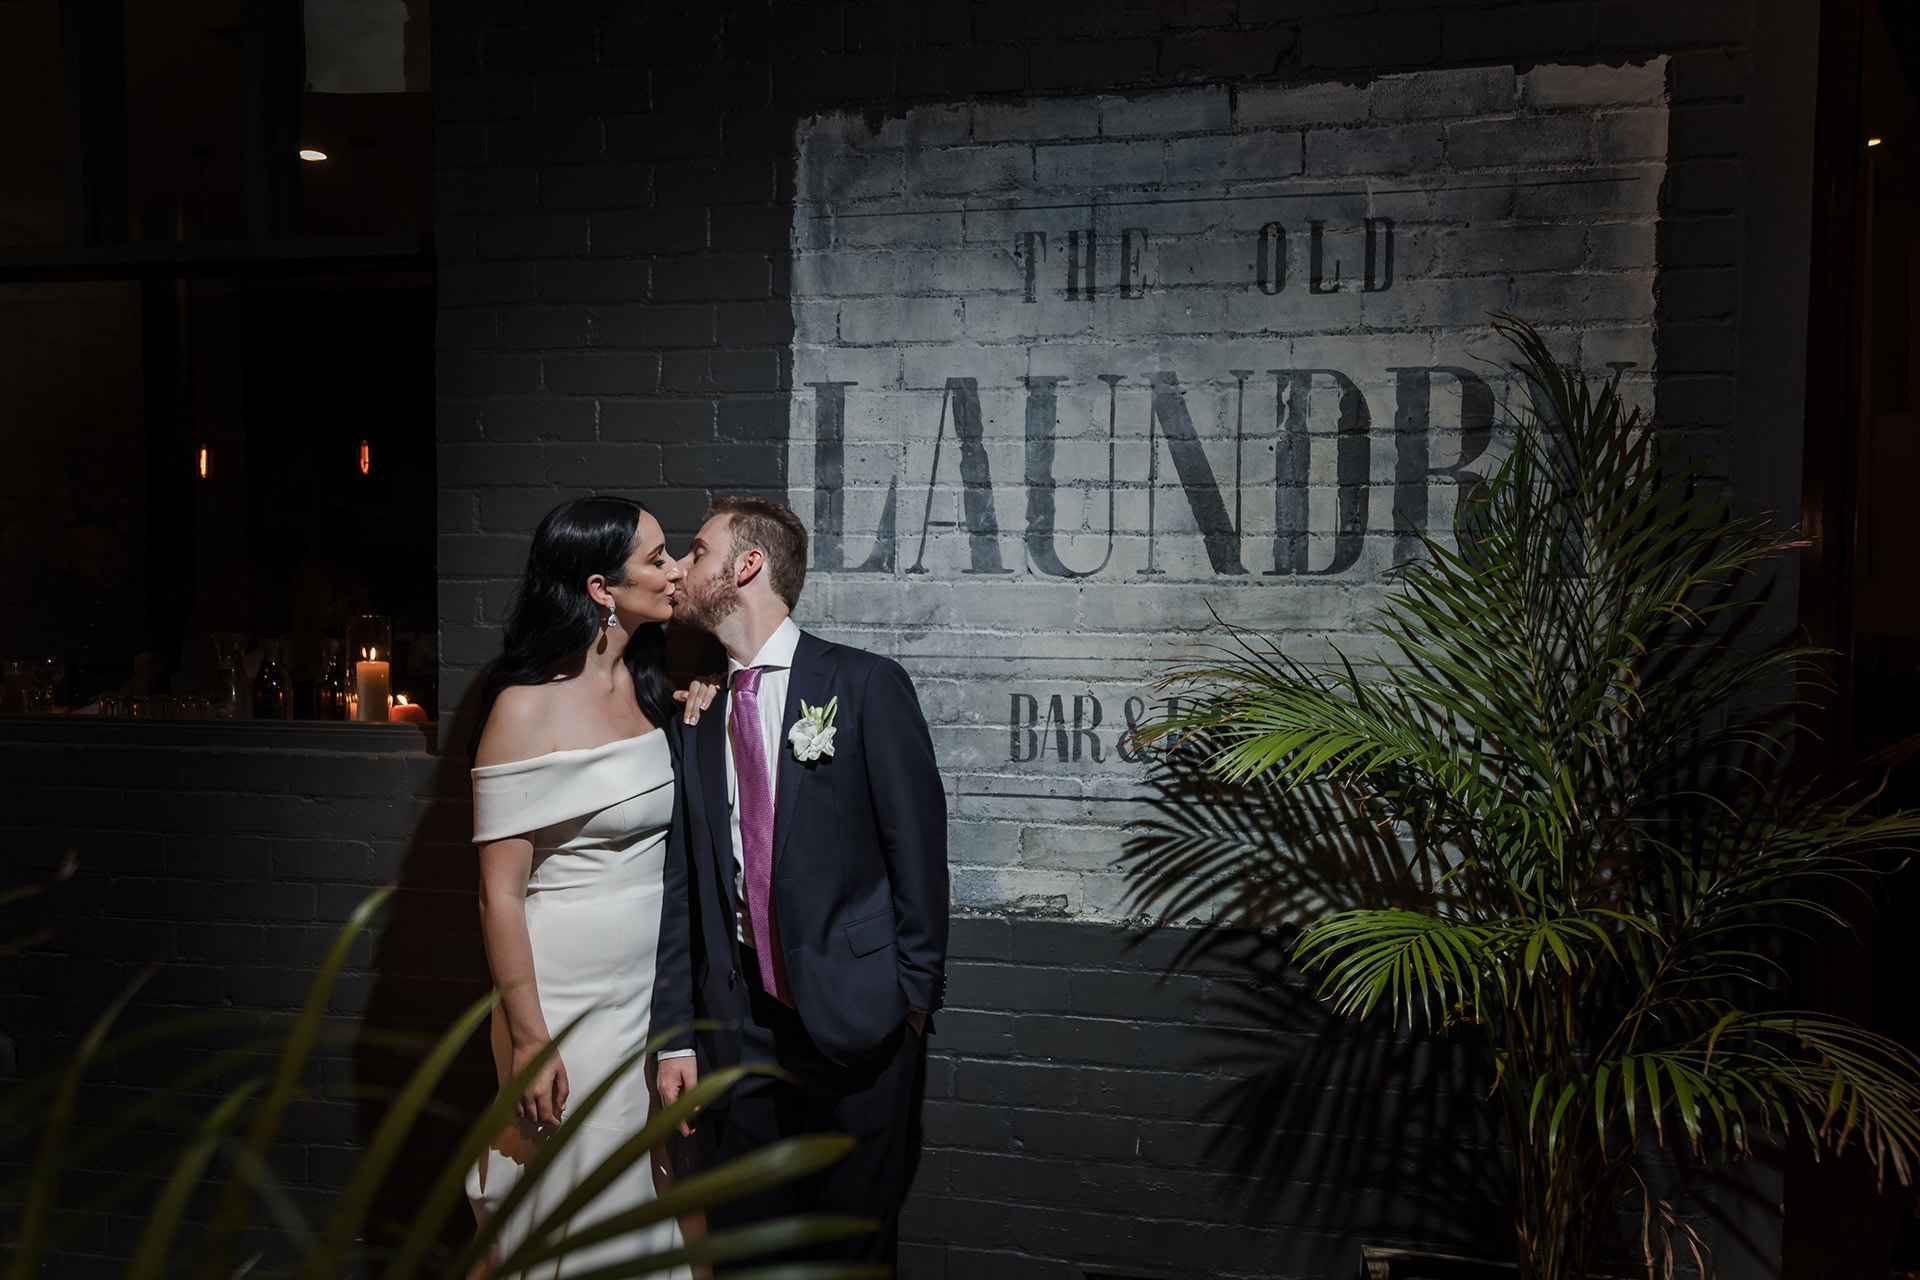 Wedding photography perth The old laundy